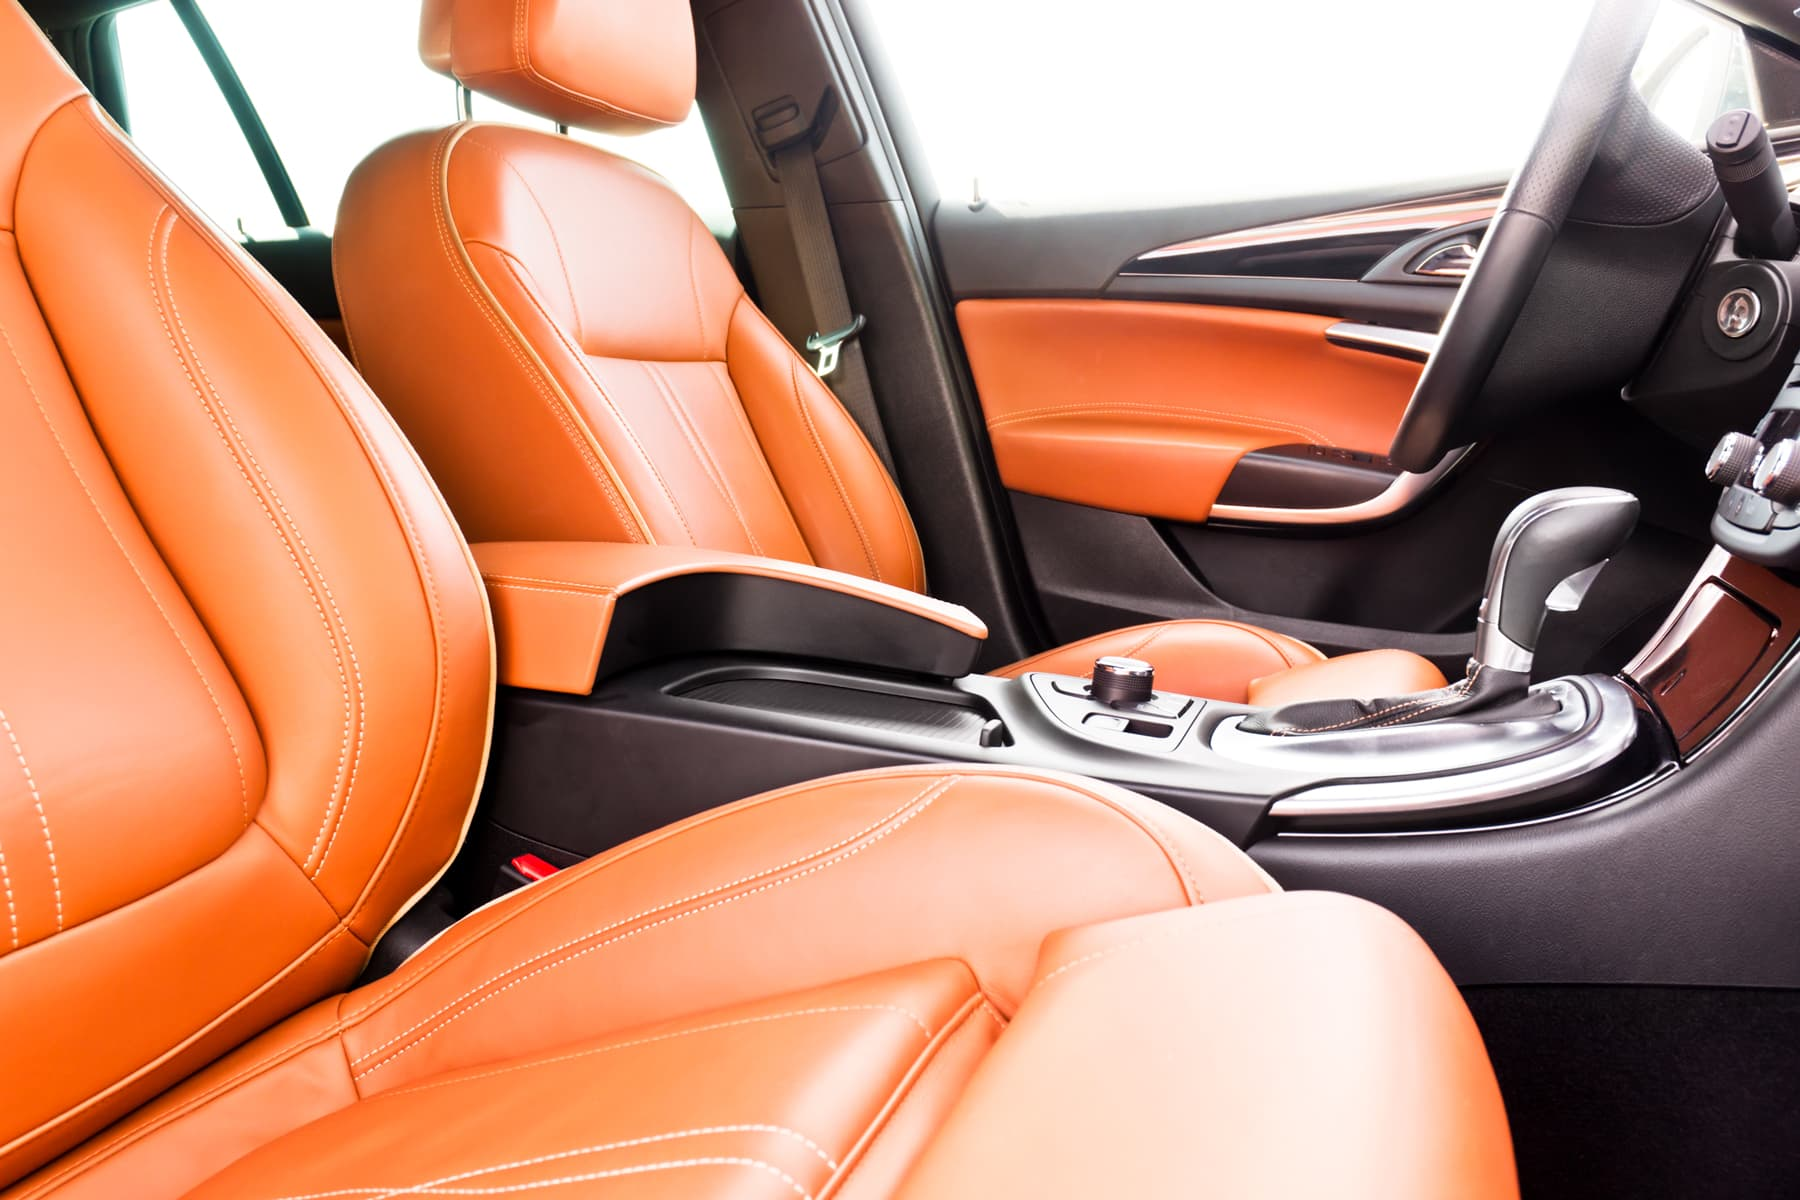 Leather is the preferred car upgrade